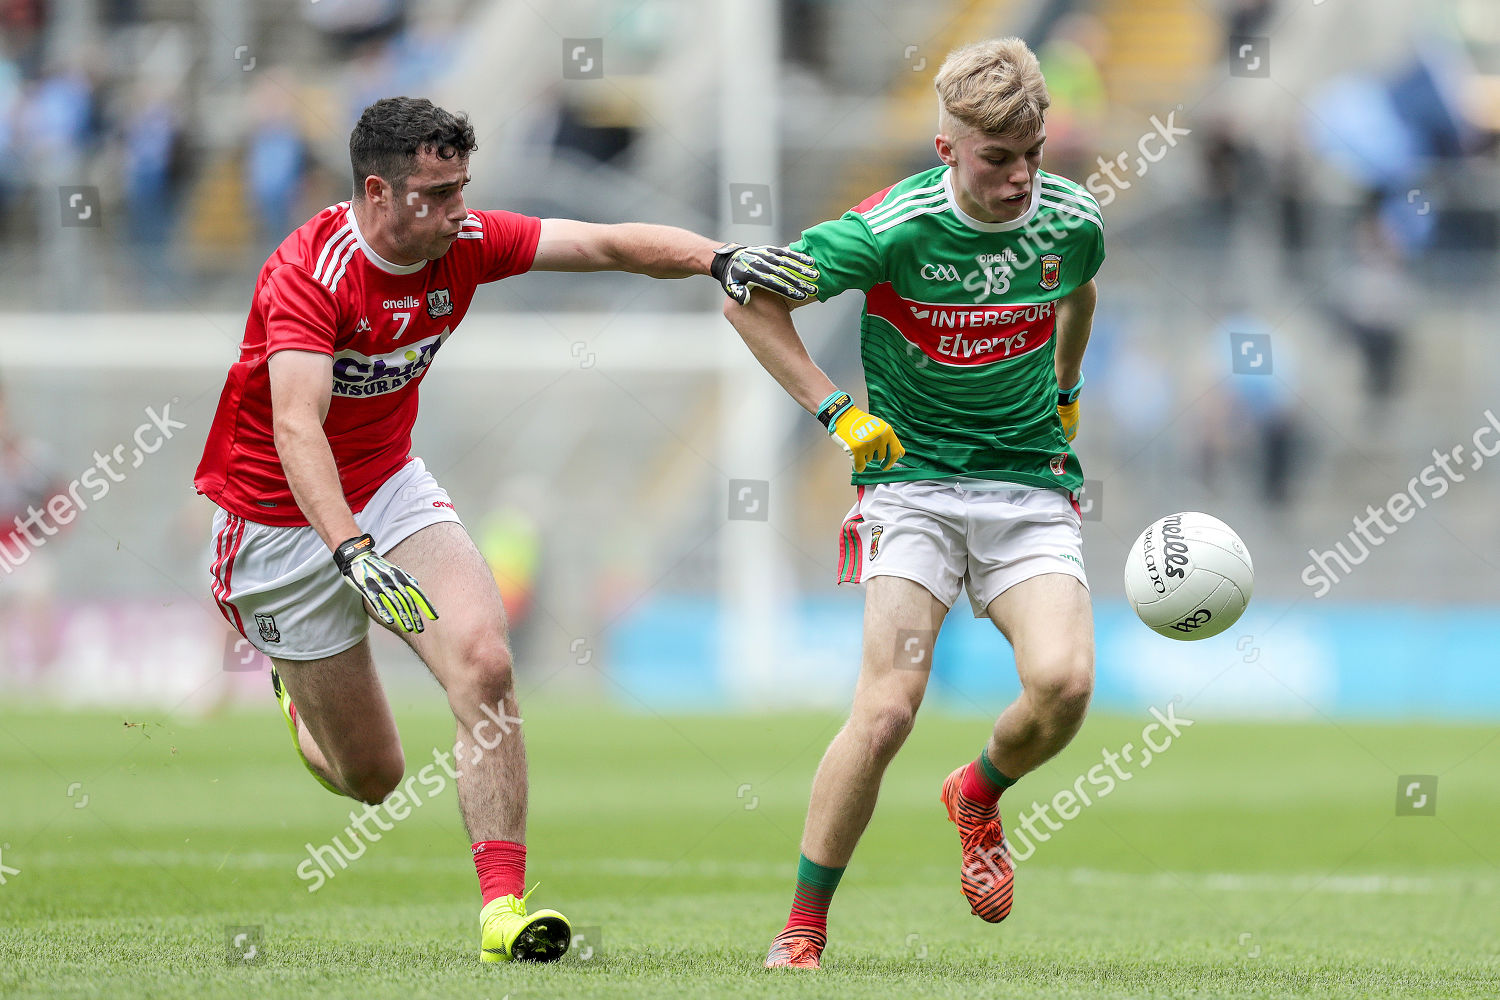 All ireland minor football championship 2021 betting sites betting rules for texas holdem poker